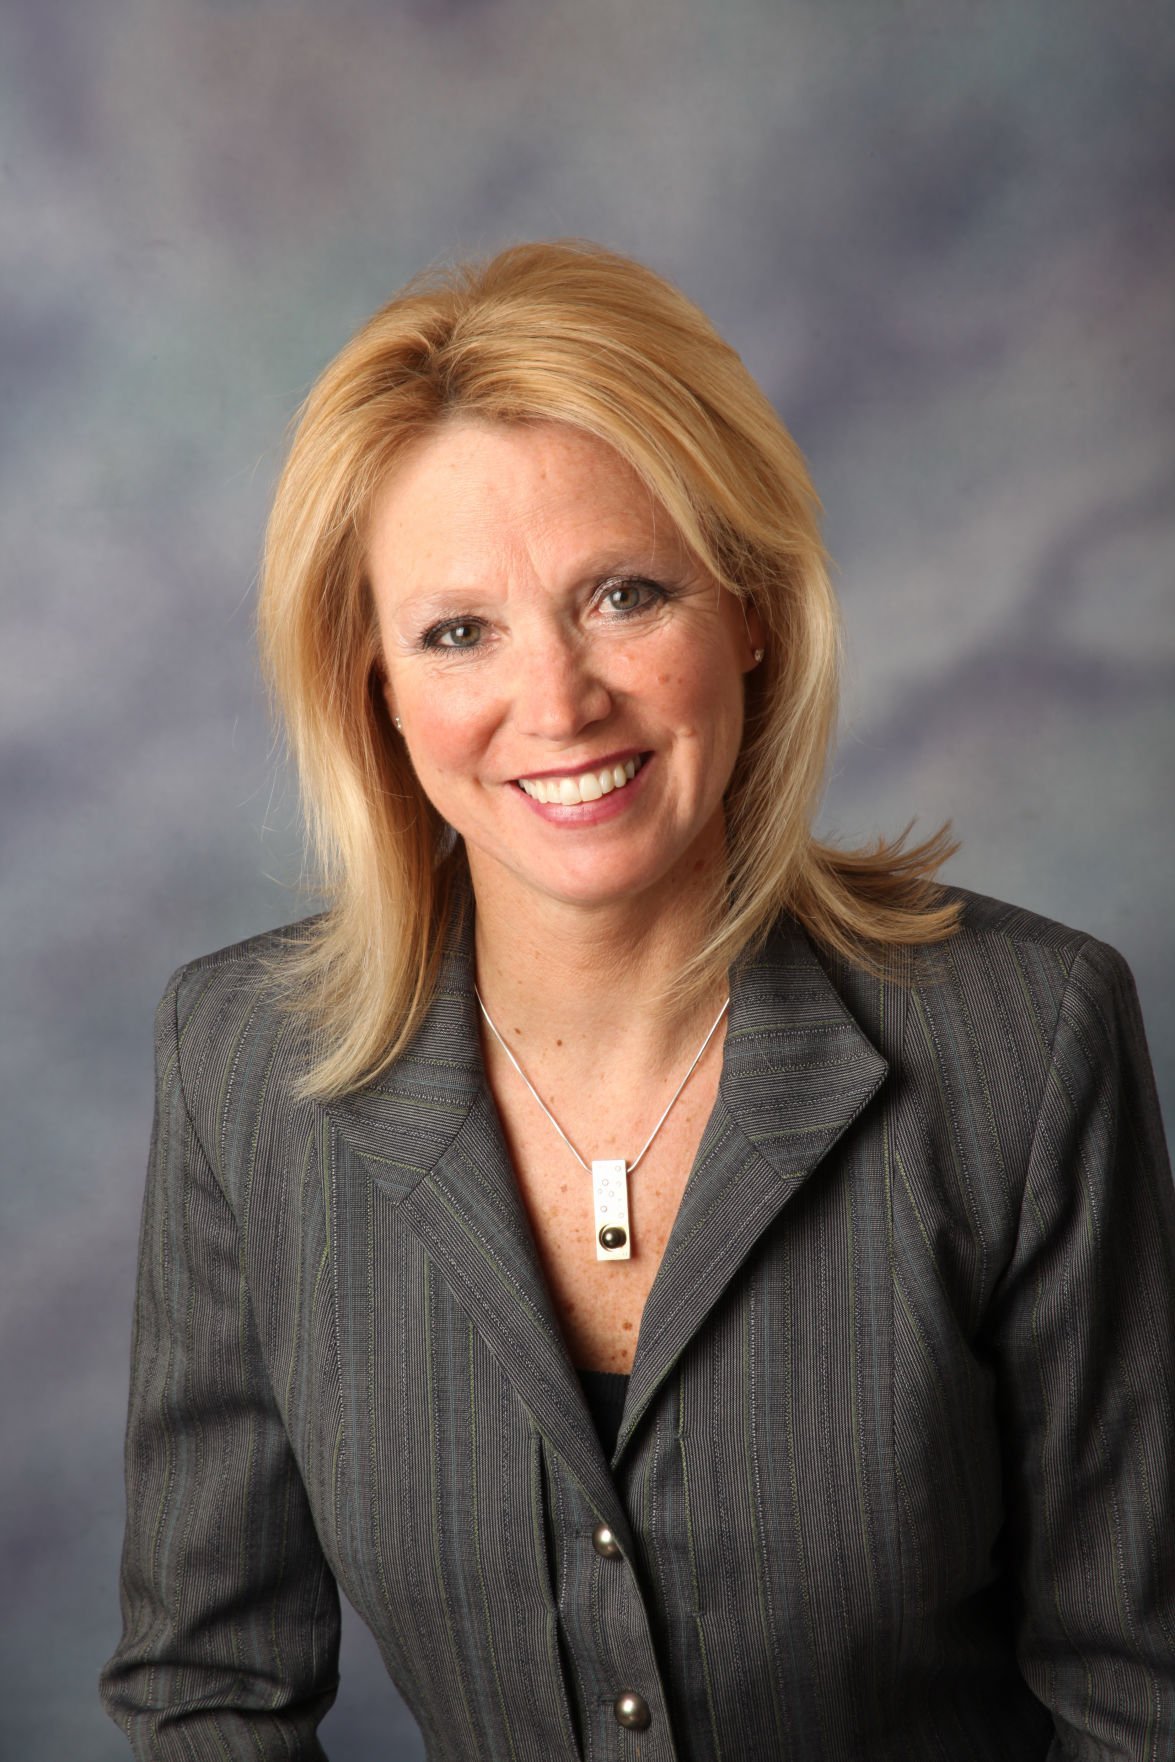 Q&A: Dr. Jeanne Salcetti, owner of Salcetti and Associates